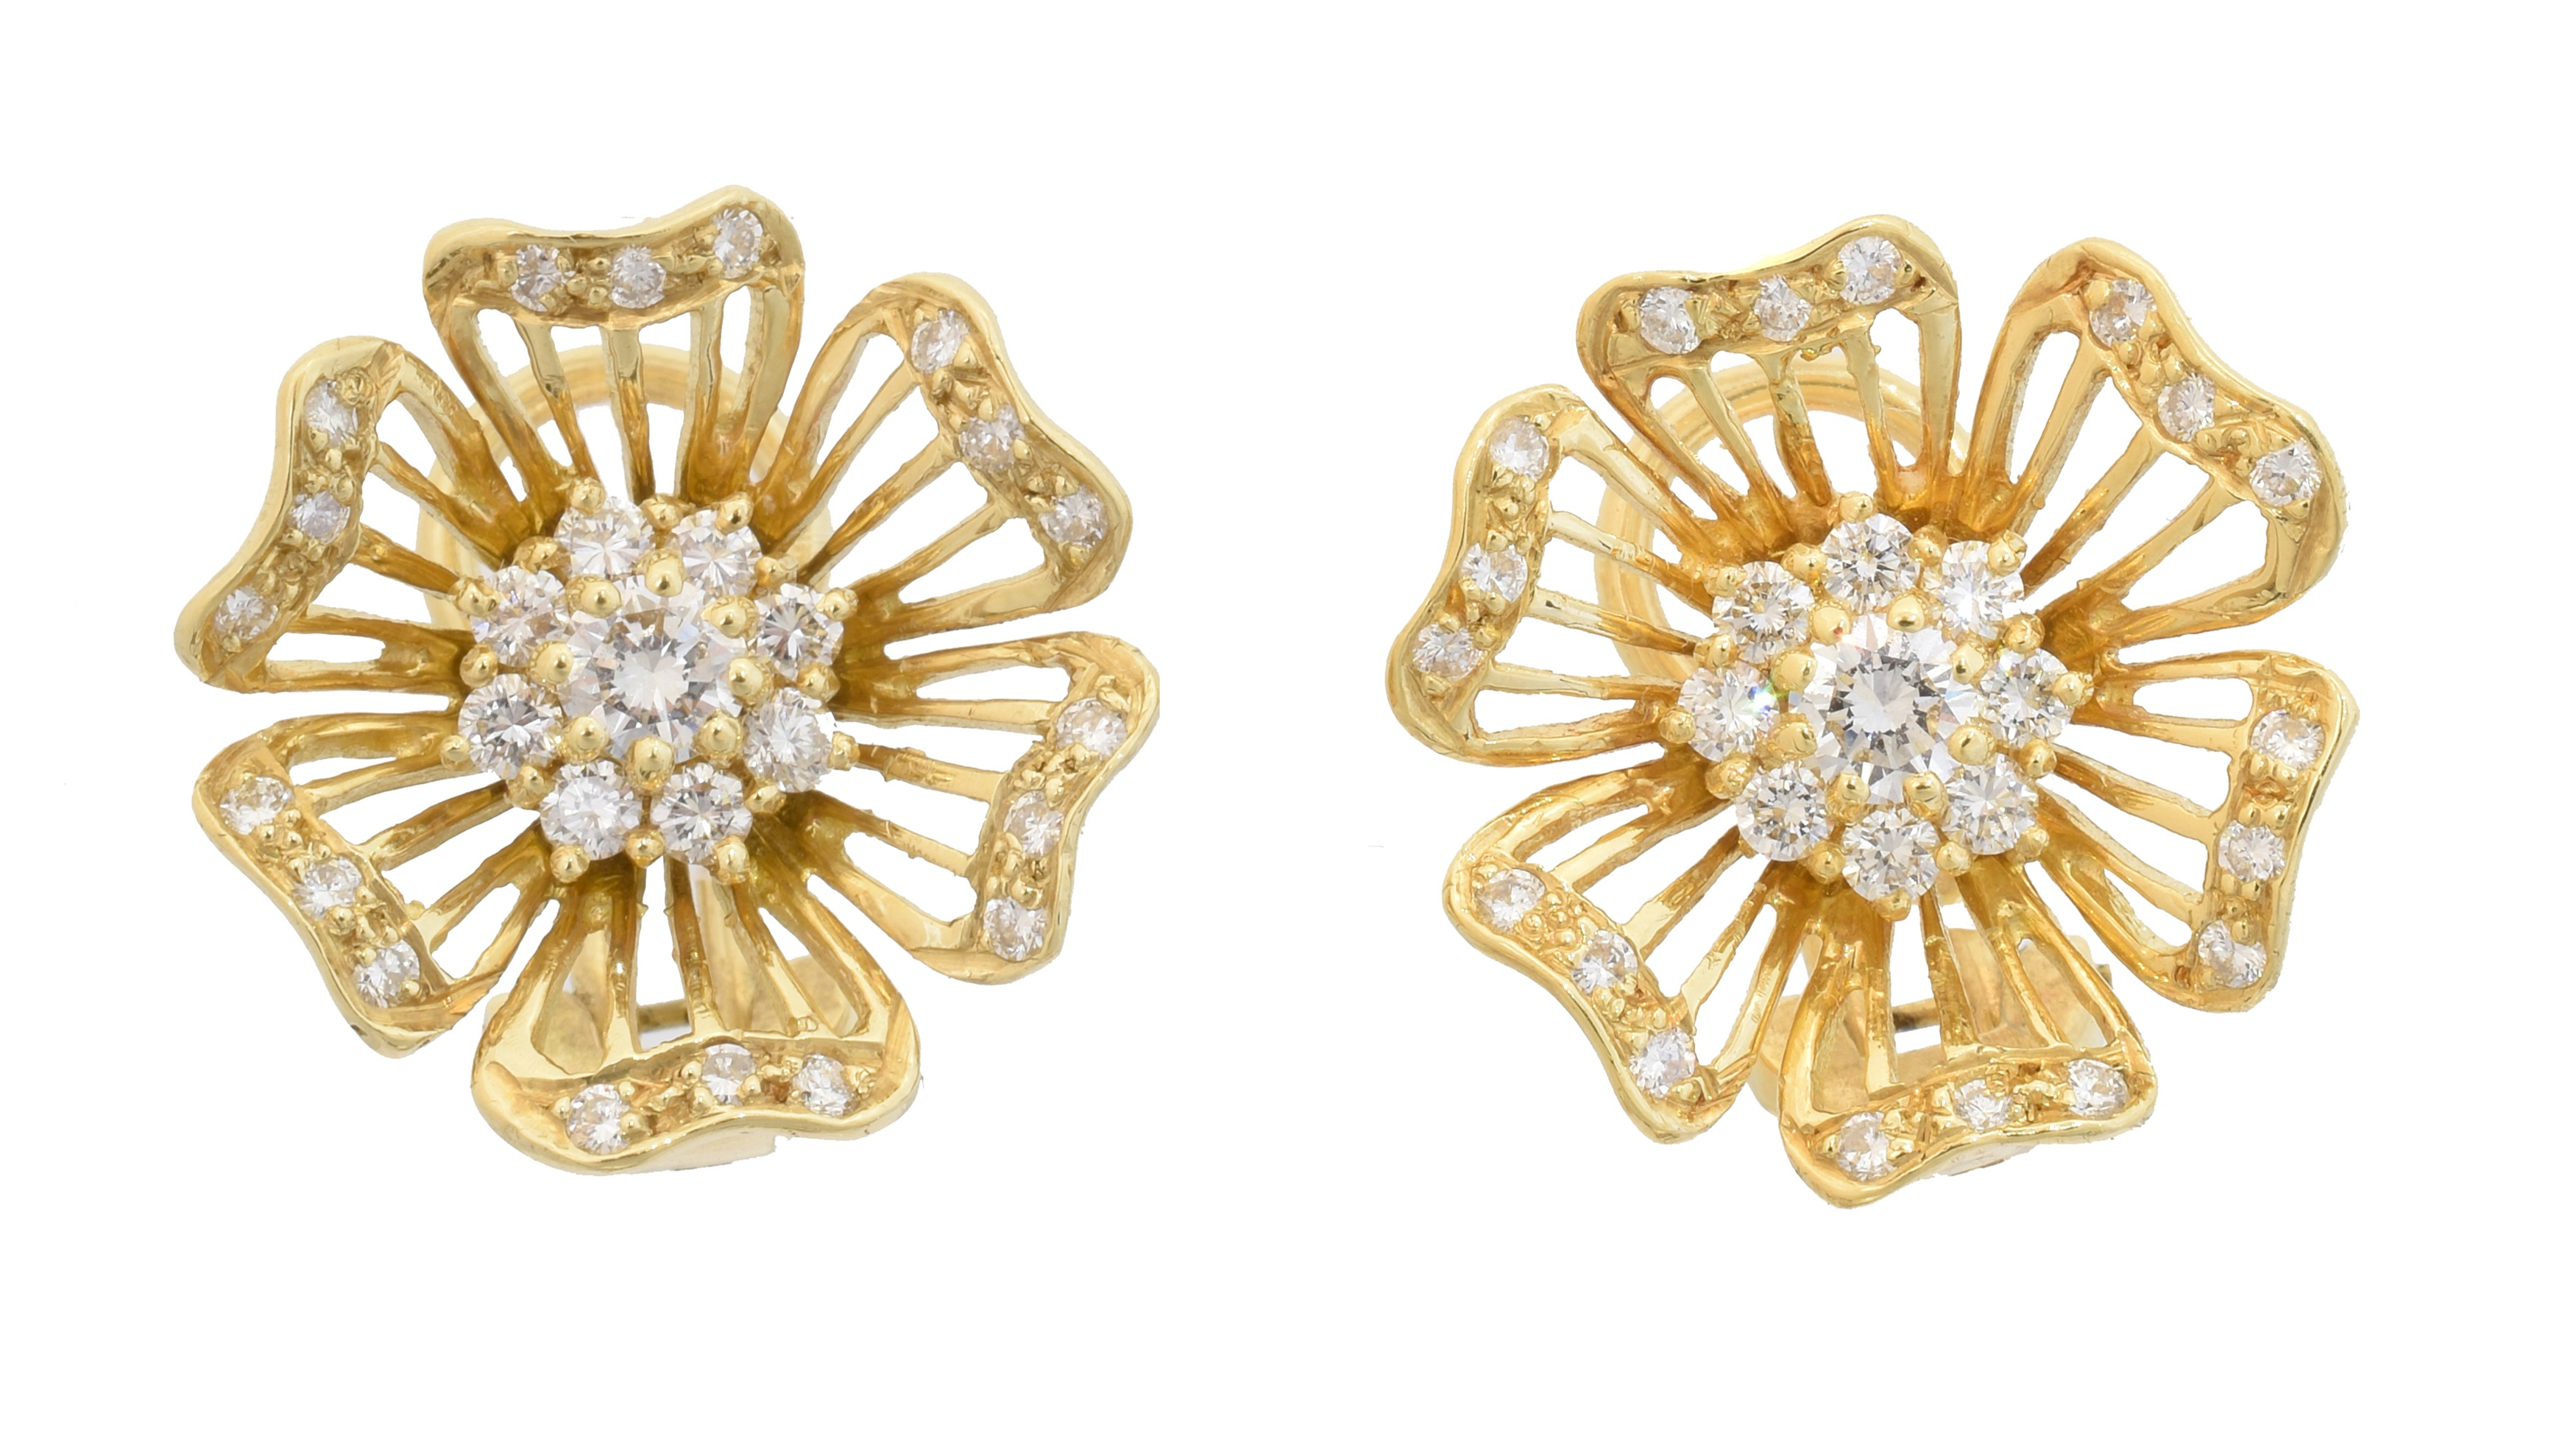 A pair of 18ct gold diamond earrings by Cropp & Farr, each designed as a brilliant cut diamond cluster within an openwork floral surround with similarly cut diamond petals, estimated total diamond weight 0.95ct, maker's marks for Cropp & Farr, hallmarks for London, 1995, length 1.8cm, gross weight 8.1g.